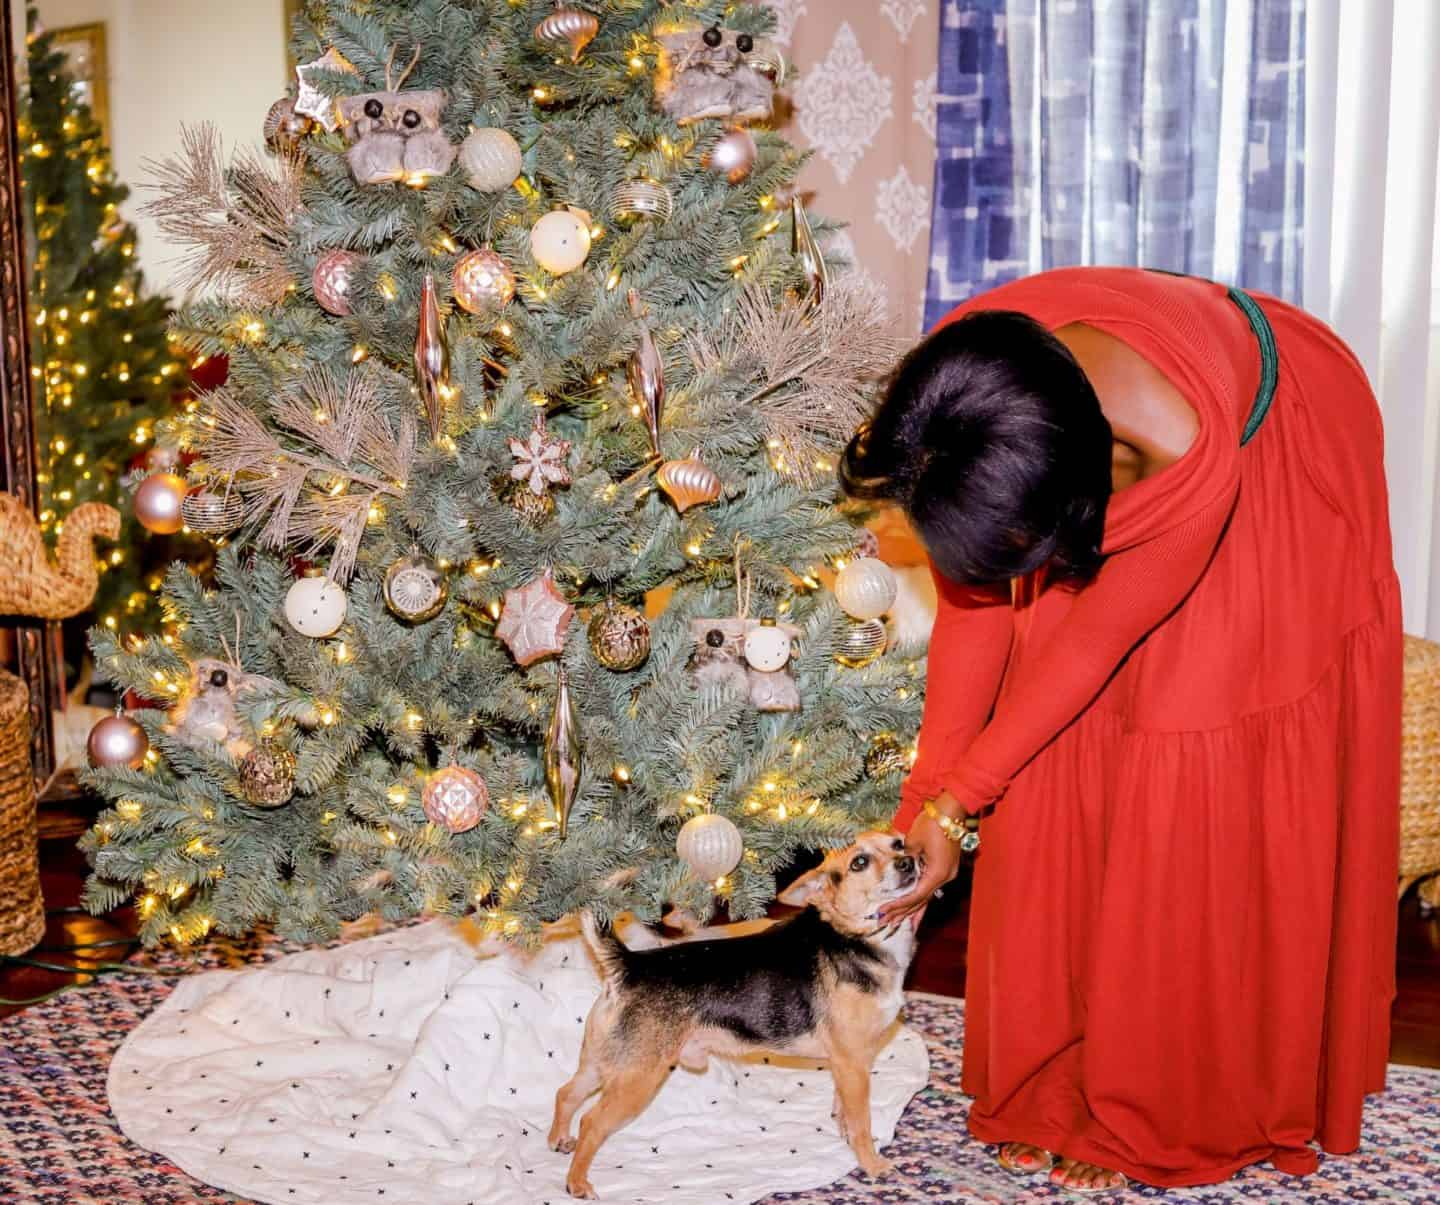 The Perfect Christmas Tree That's Even Puppy Approved! | Shaunda Necole